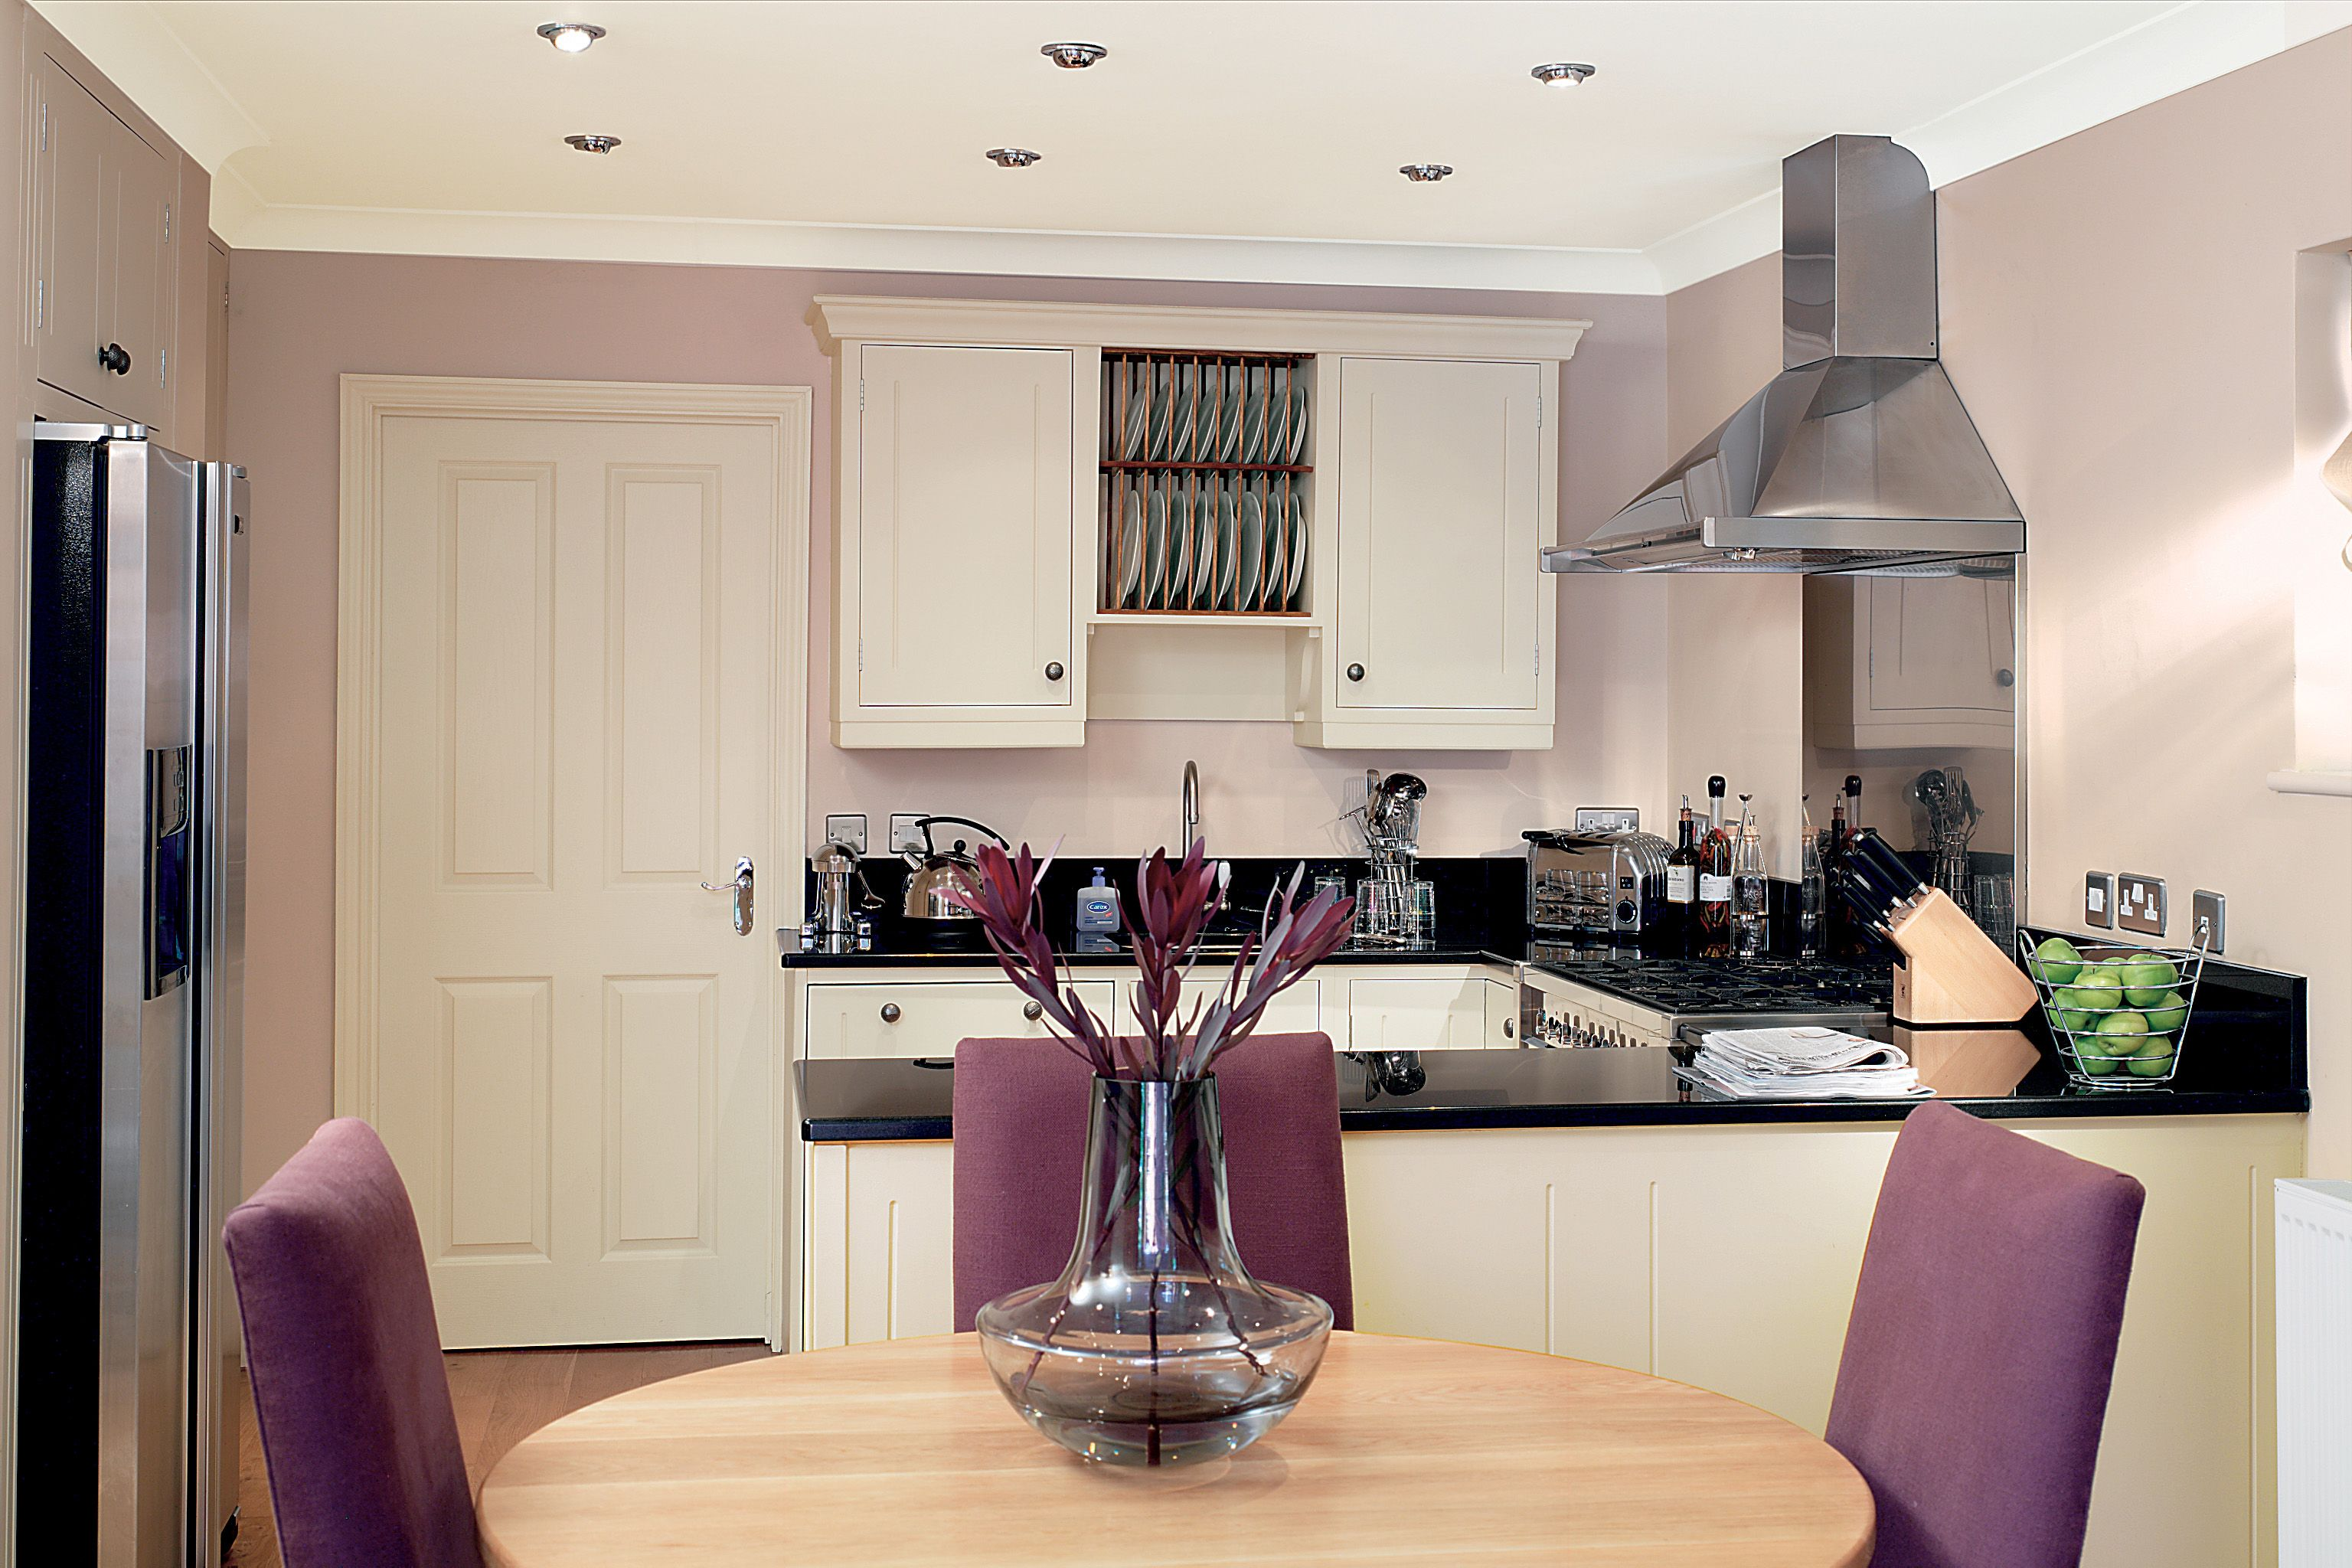 Soft colours compliment a modern stainless steel kitchen